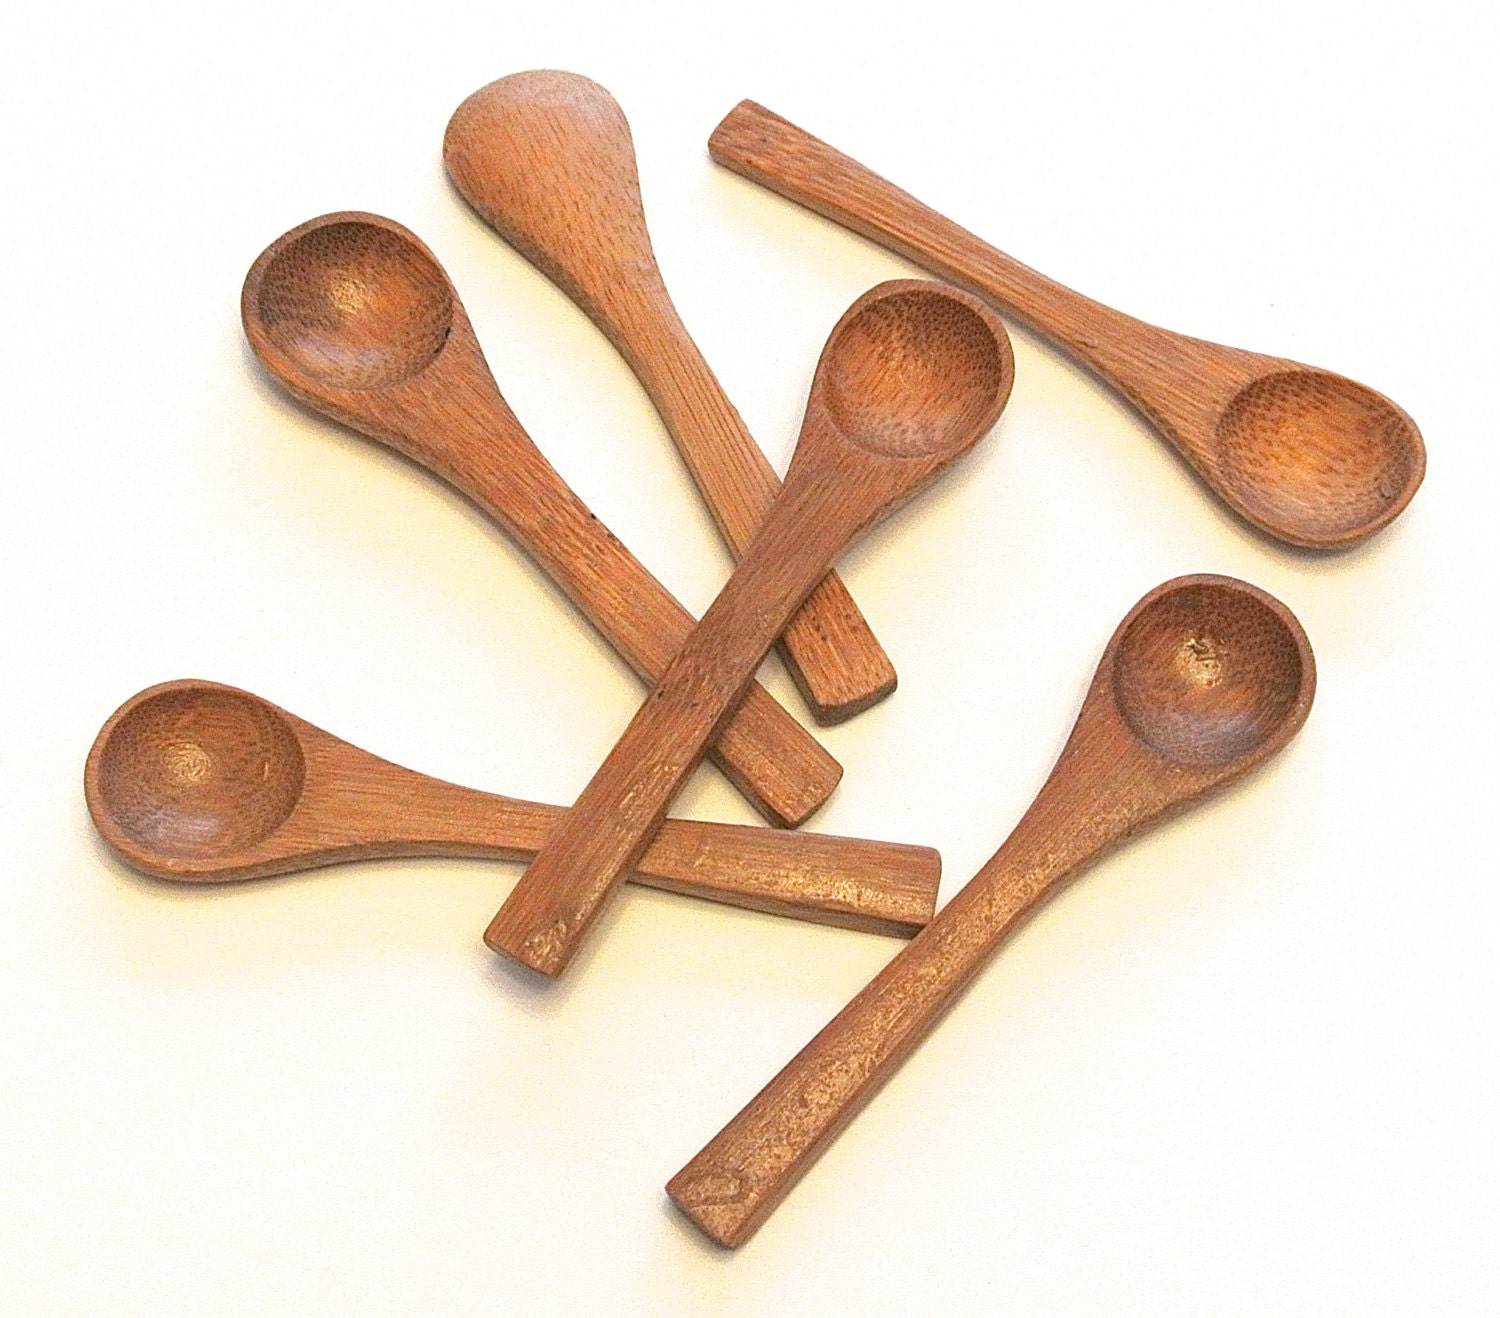 Wooden Spoon Makers ~ Mini bamboo wood spoons wooden demitasse